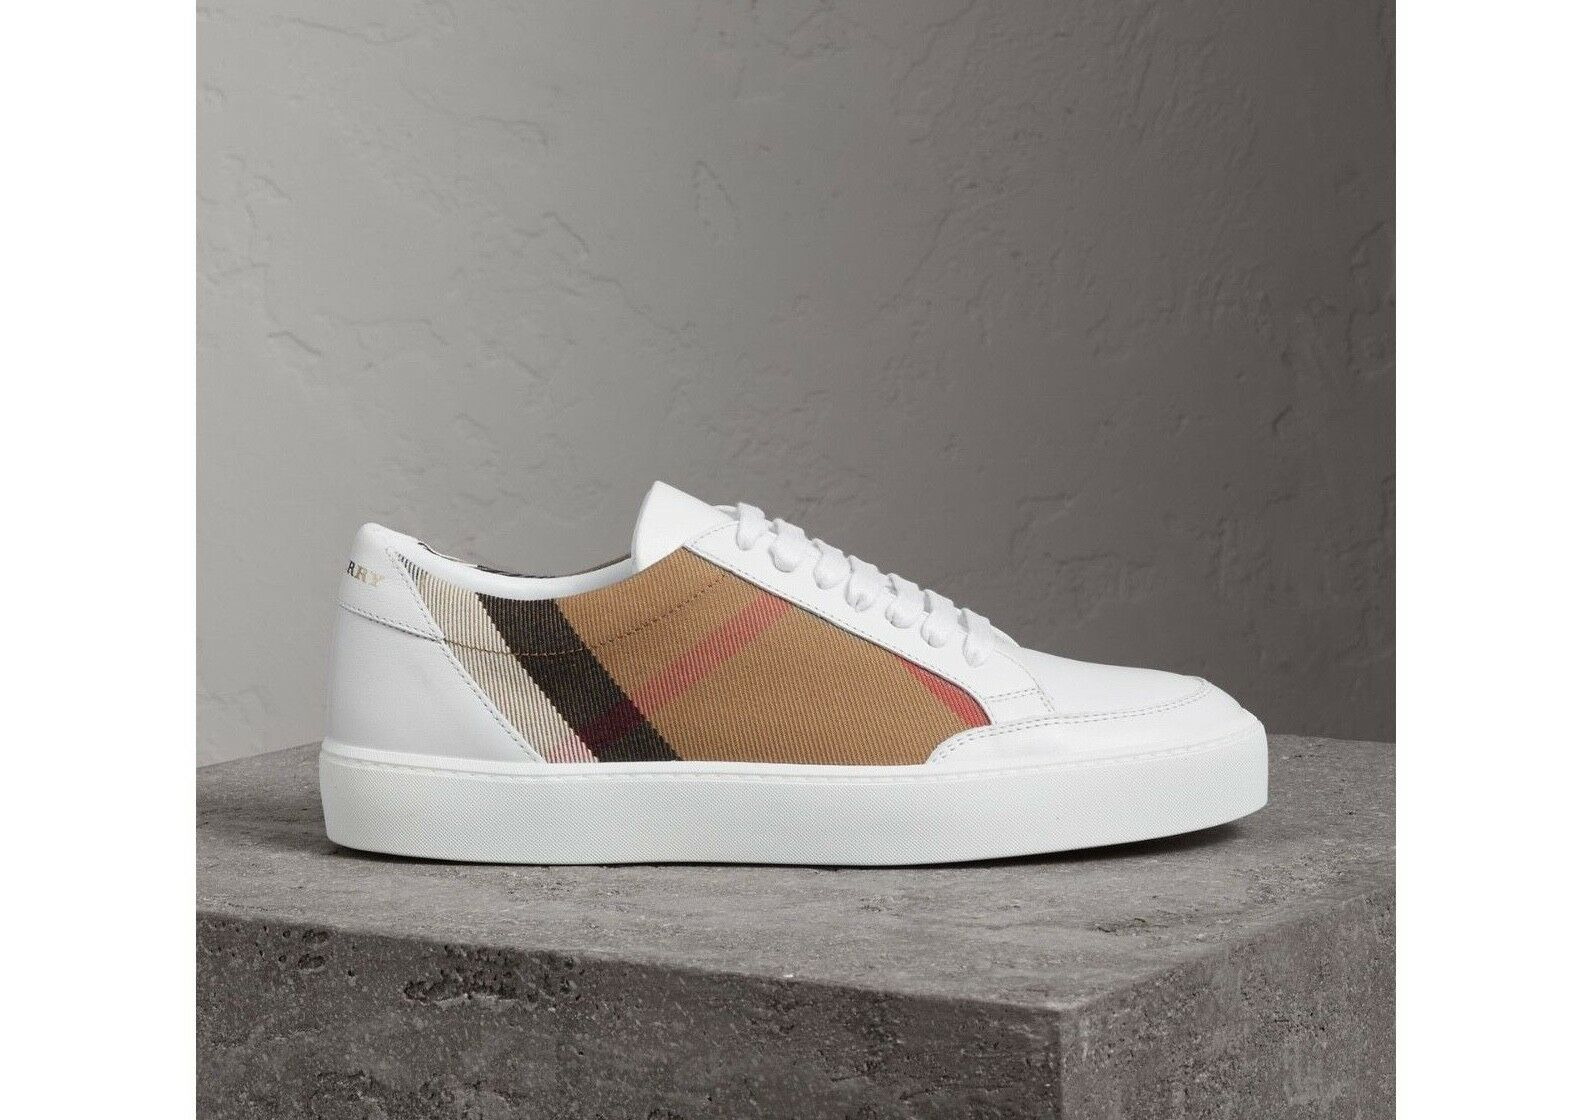 BURBERRY BURBERRY BURBERRY SALMOND WHITE LEATHER CHECK FABRIC LACE LOW SNEAKERS SIZE 37.5  390 e26731